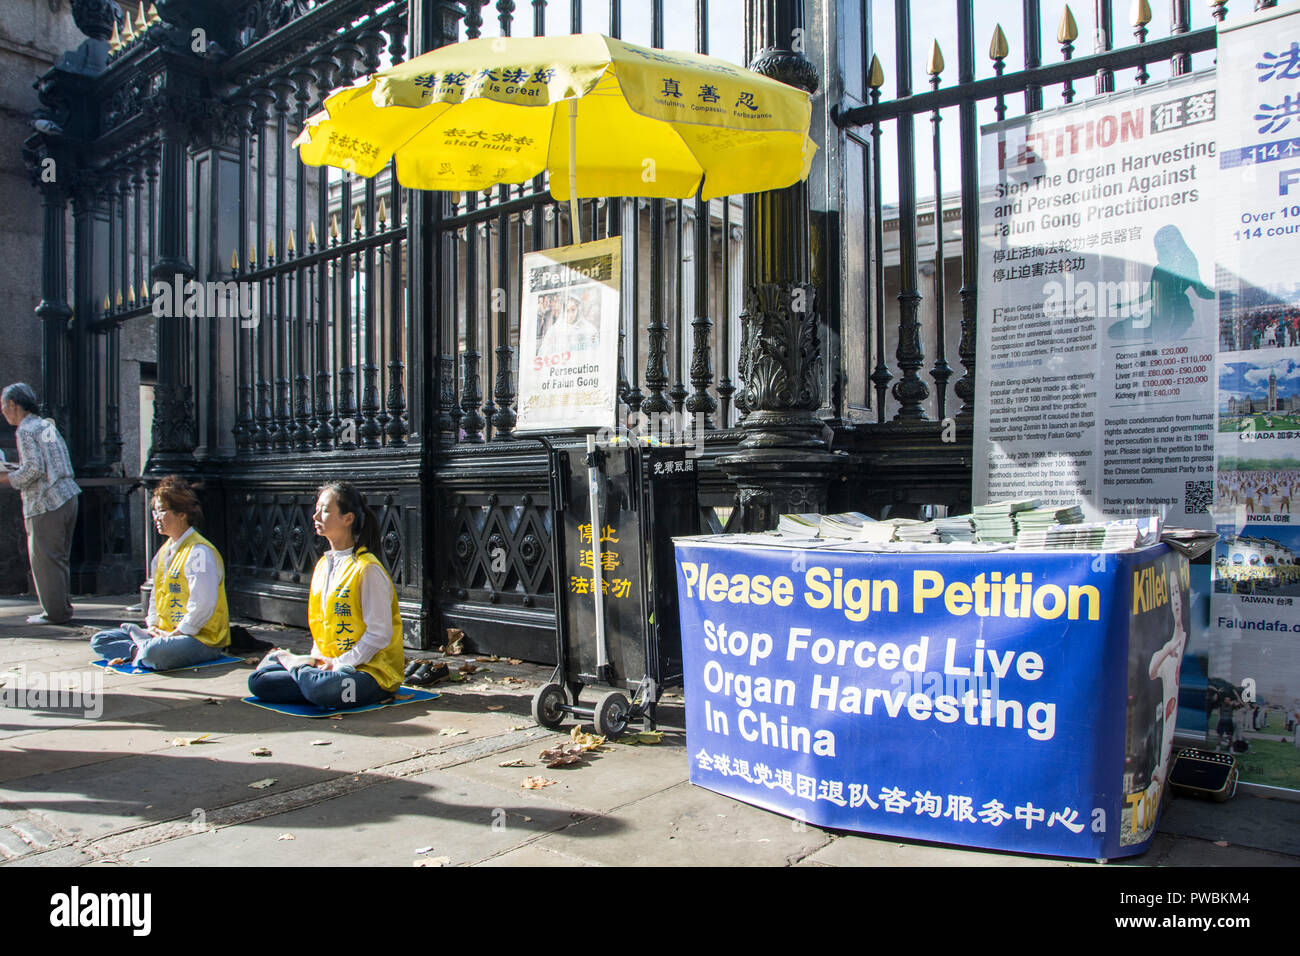 London, England, UK. 13 October, 2018.  Falun Gong practitioners protest outside the gates of the British Museum to Stop Forced Live Organ Harvesting  Stock Photo